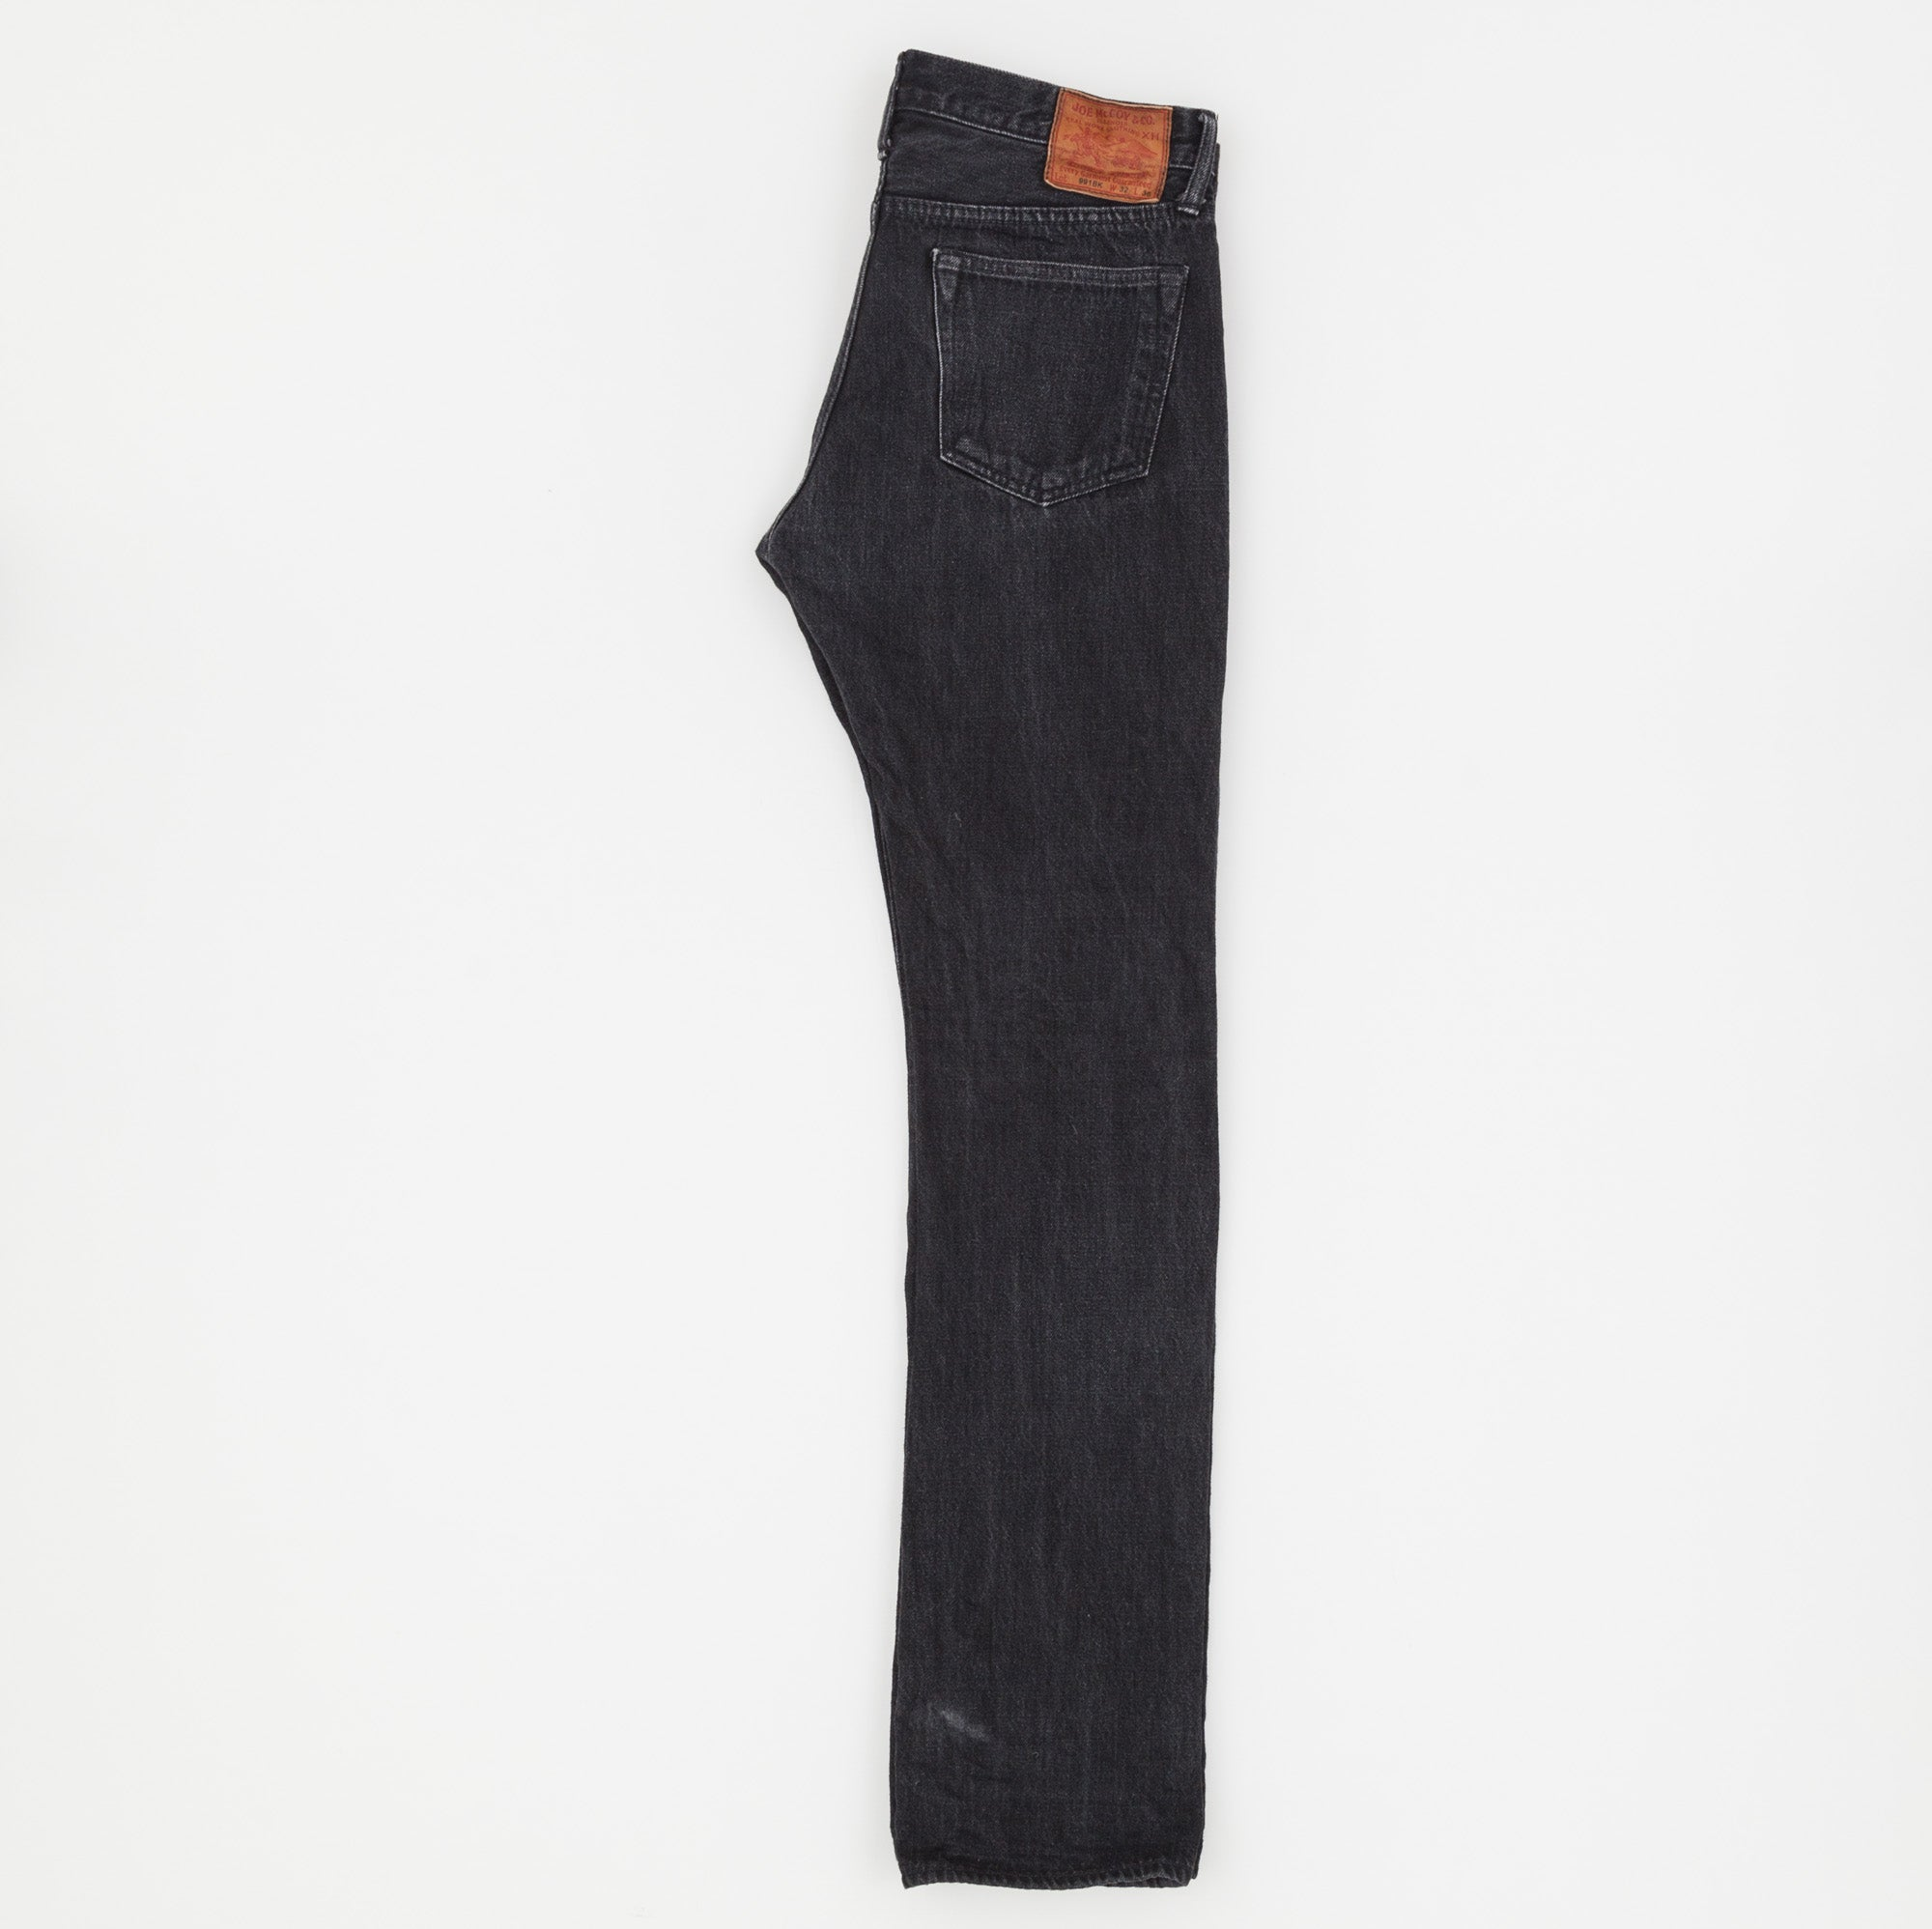 Joe McCoy 991BK Denim